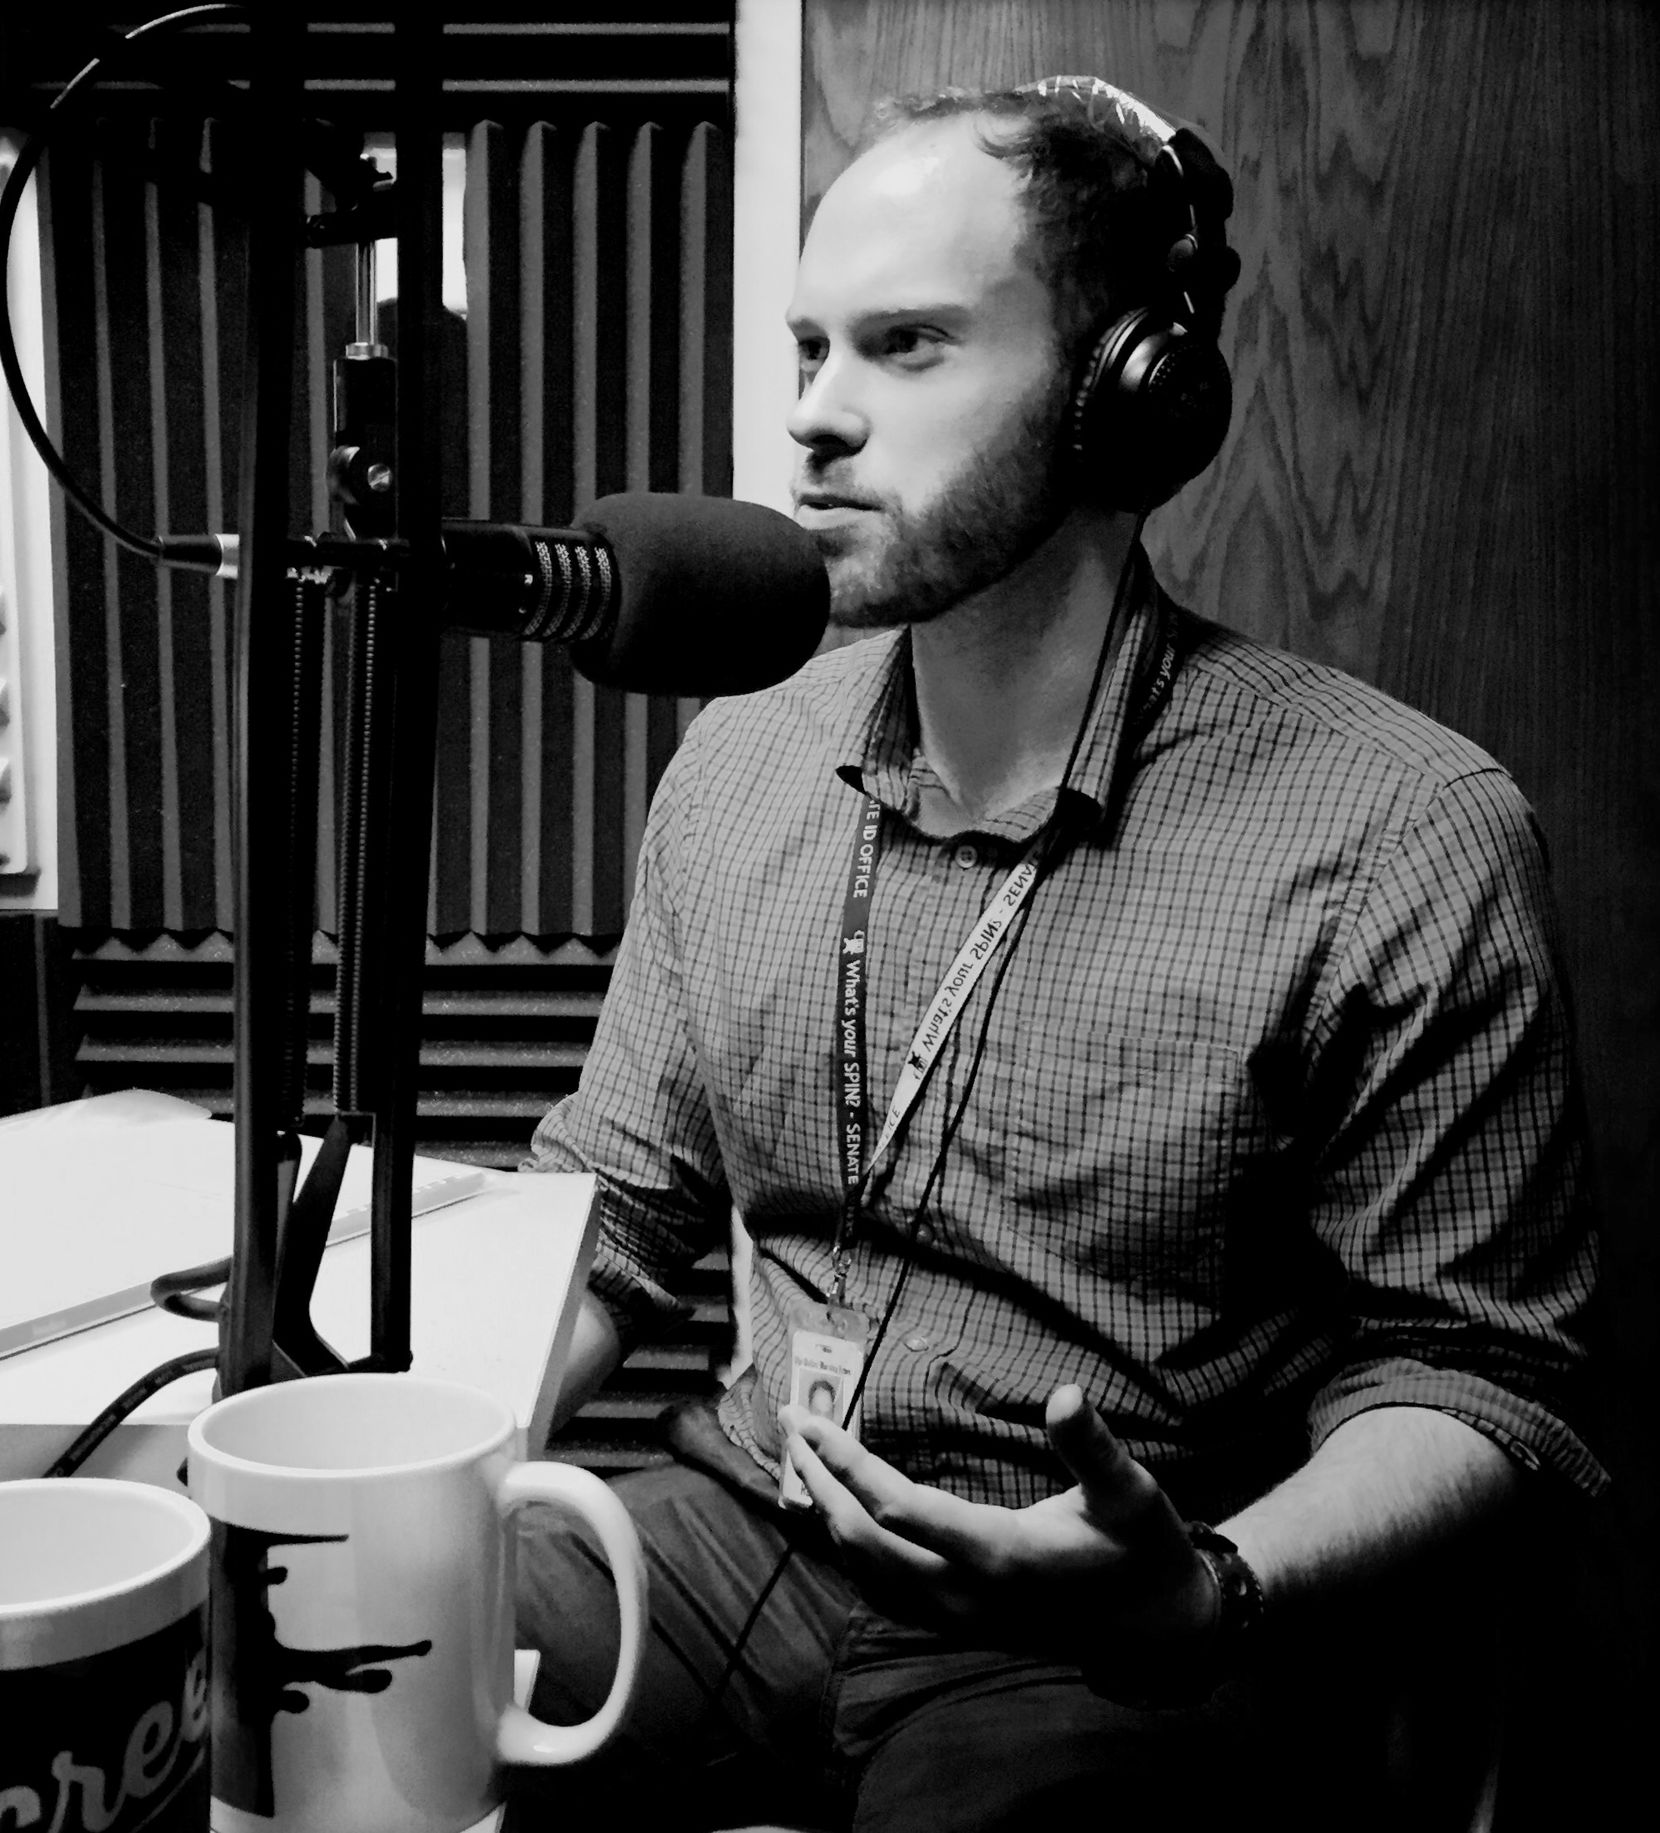 Dallas Morning News crime writer and co-host of the Texas CrimeCast podcast, Tristan Hallman